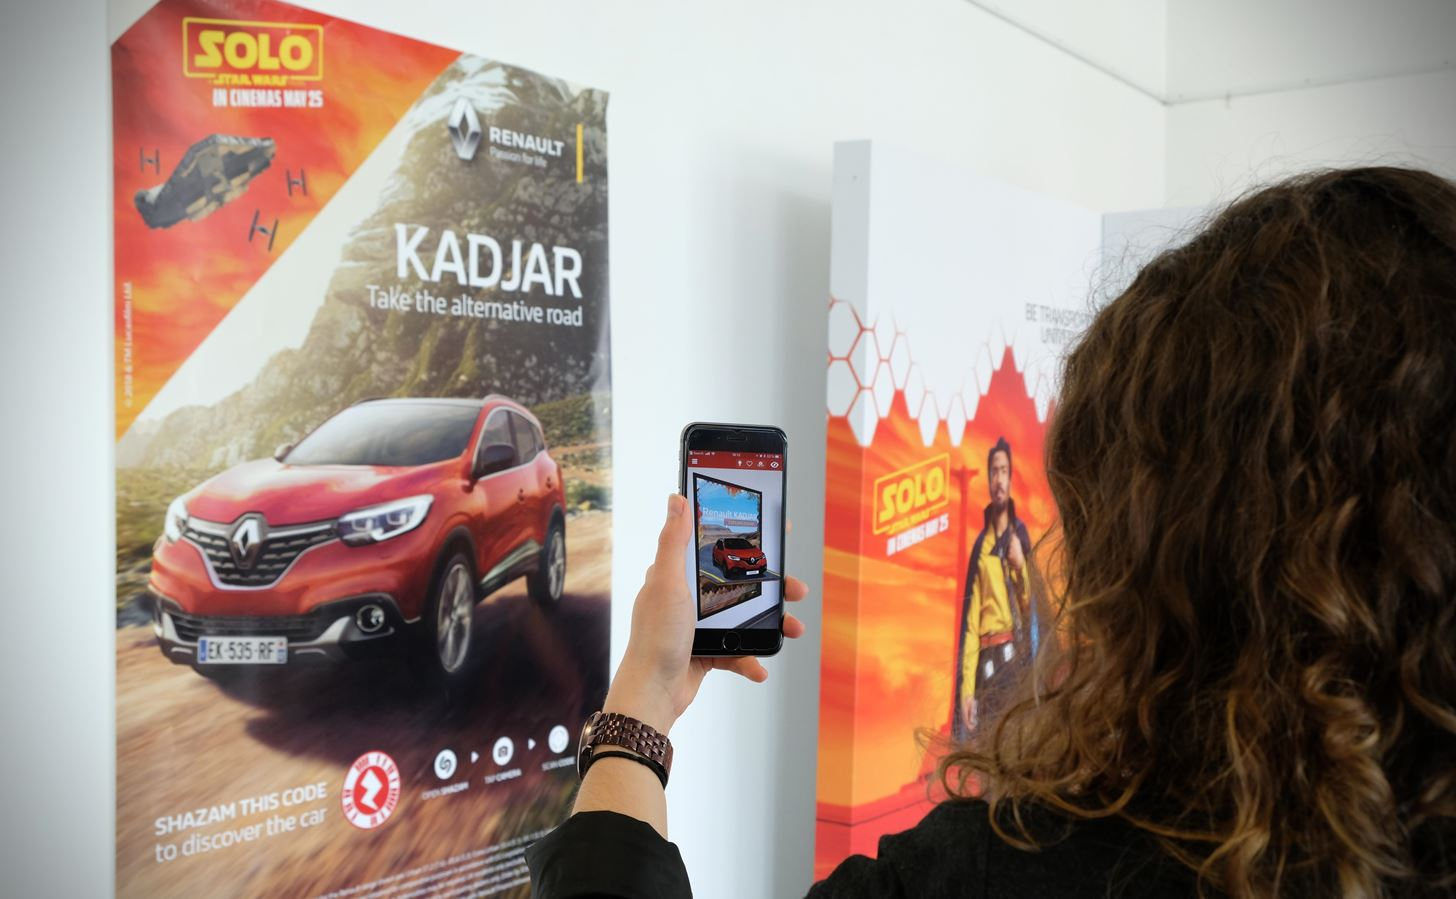 Renault Uses Shazam AR to Harness the Latest Star Wars Movie Hype